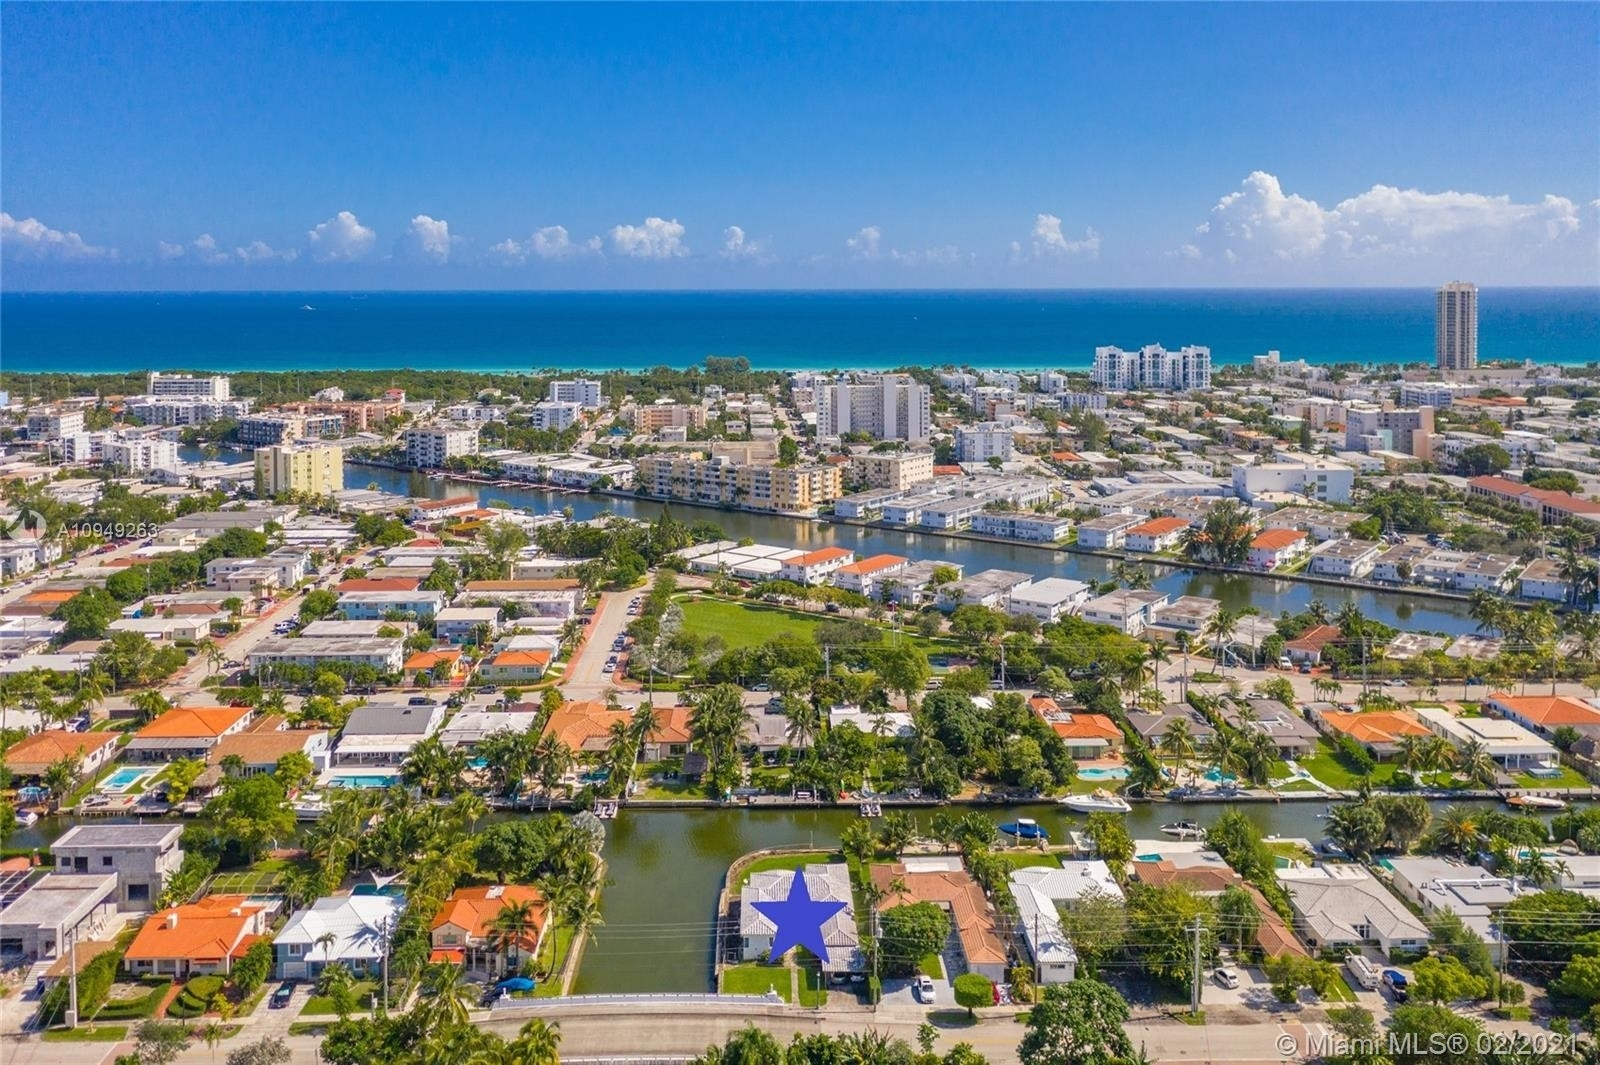 Otro por un Venta en Biscayne Point, Miami Beach, FL 33141